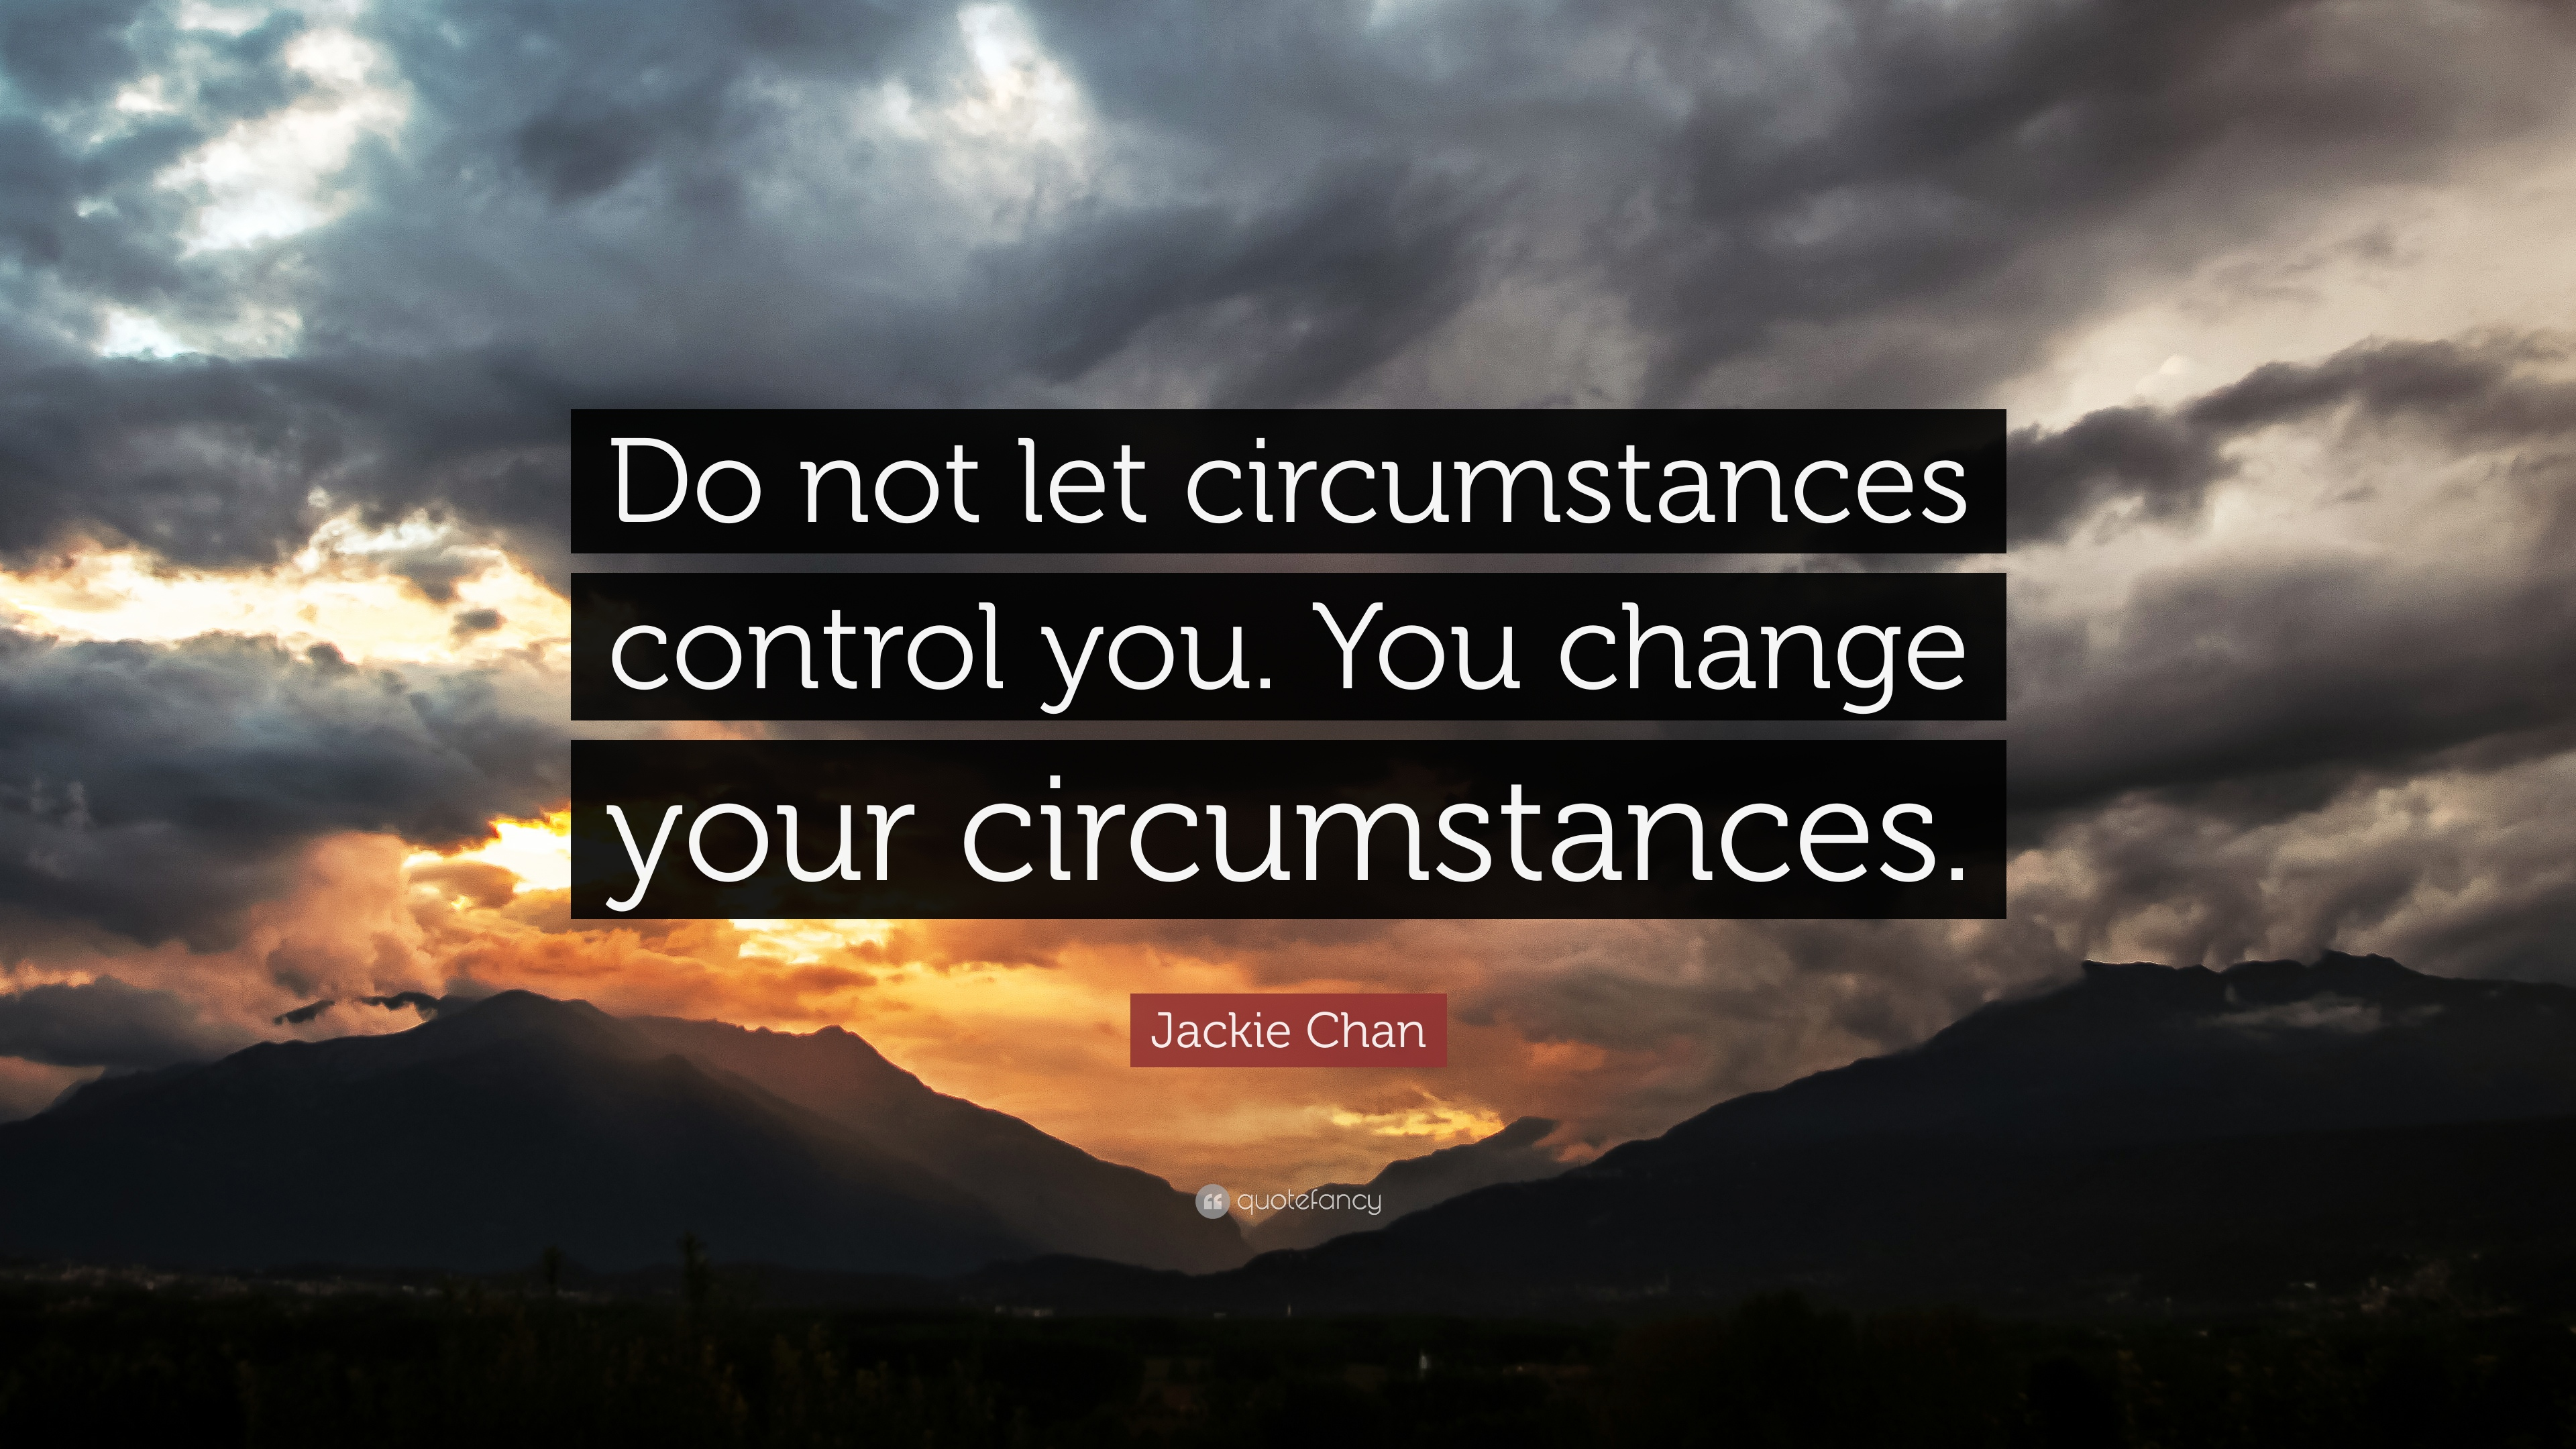 jackie chan quote do not let circumstances control you you change